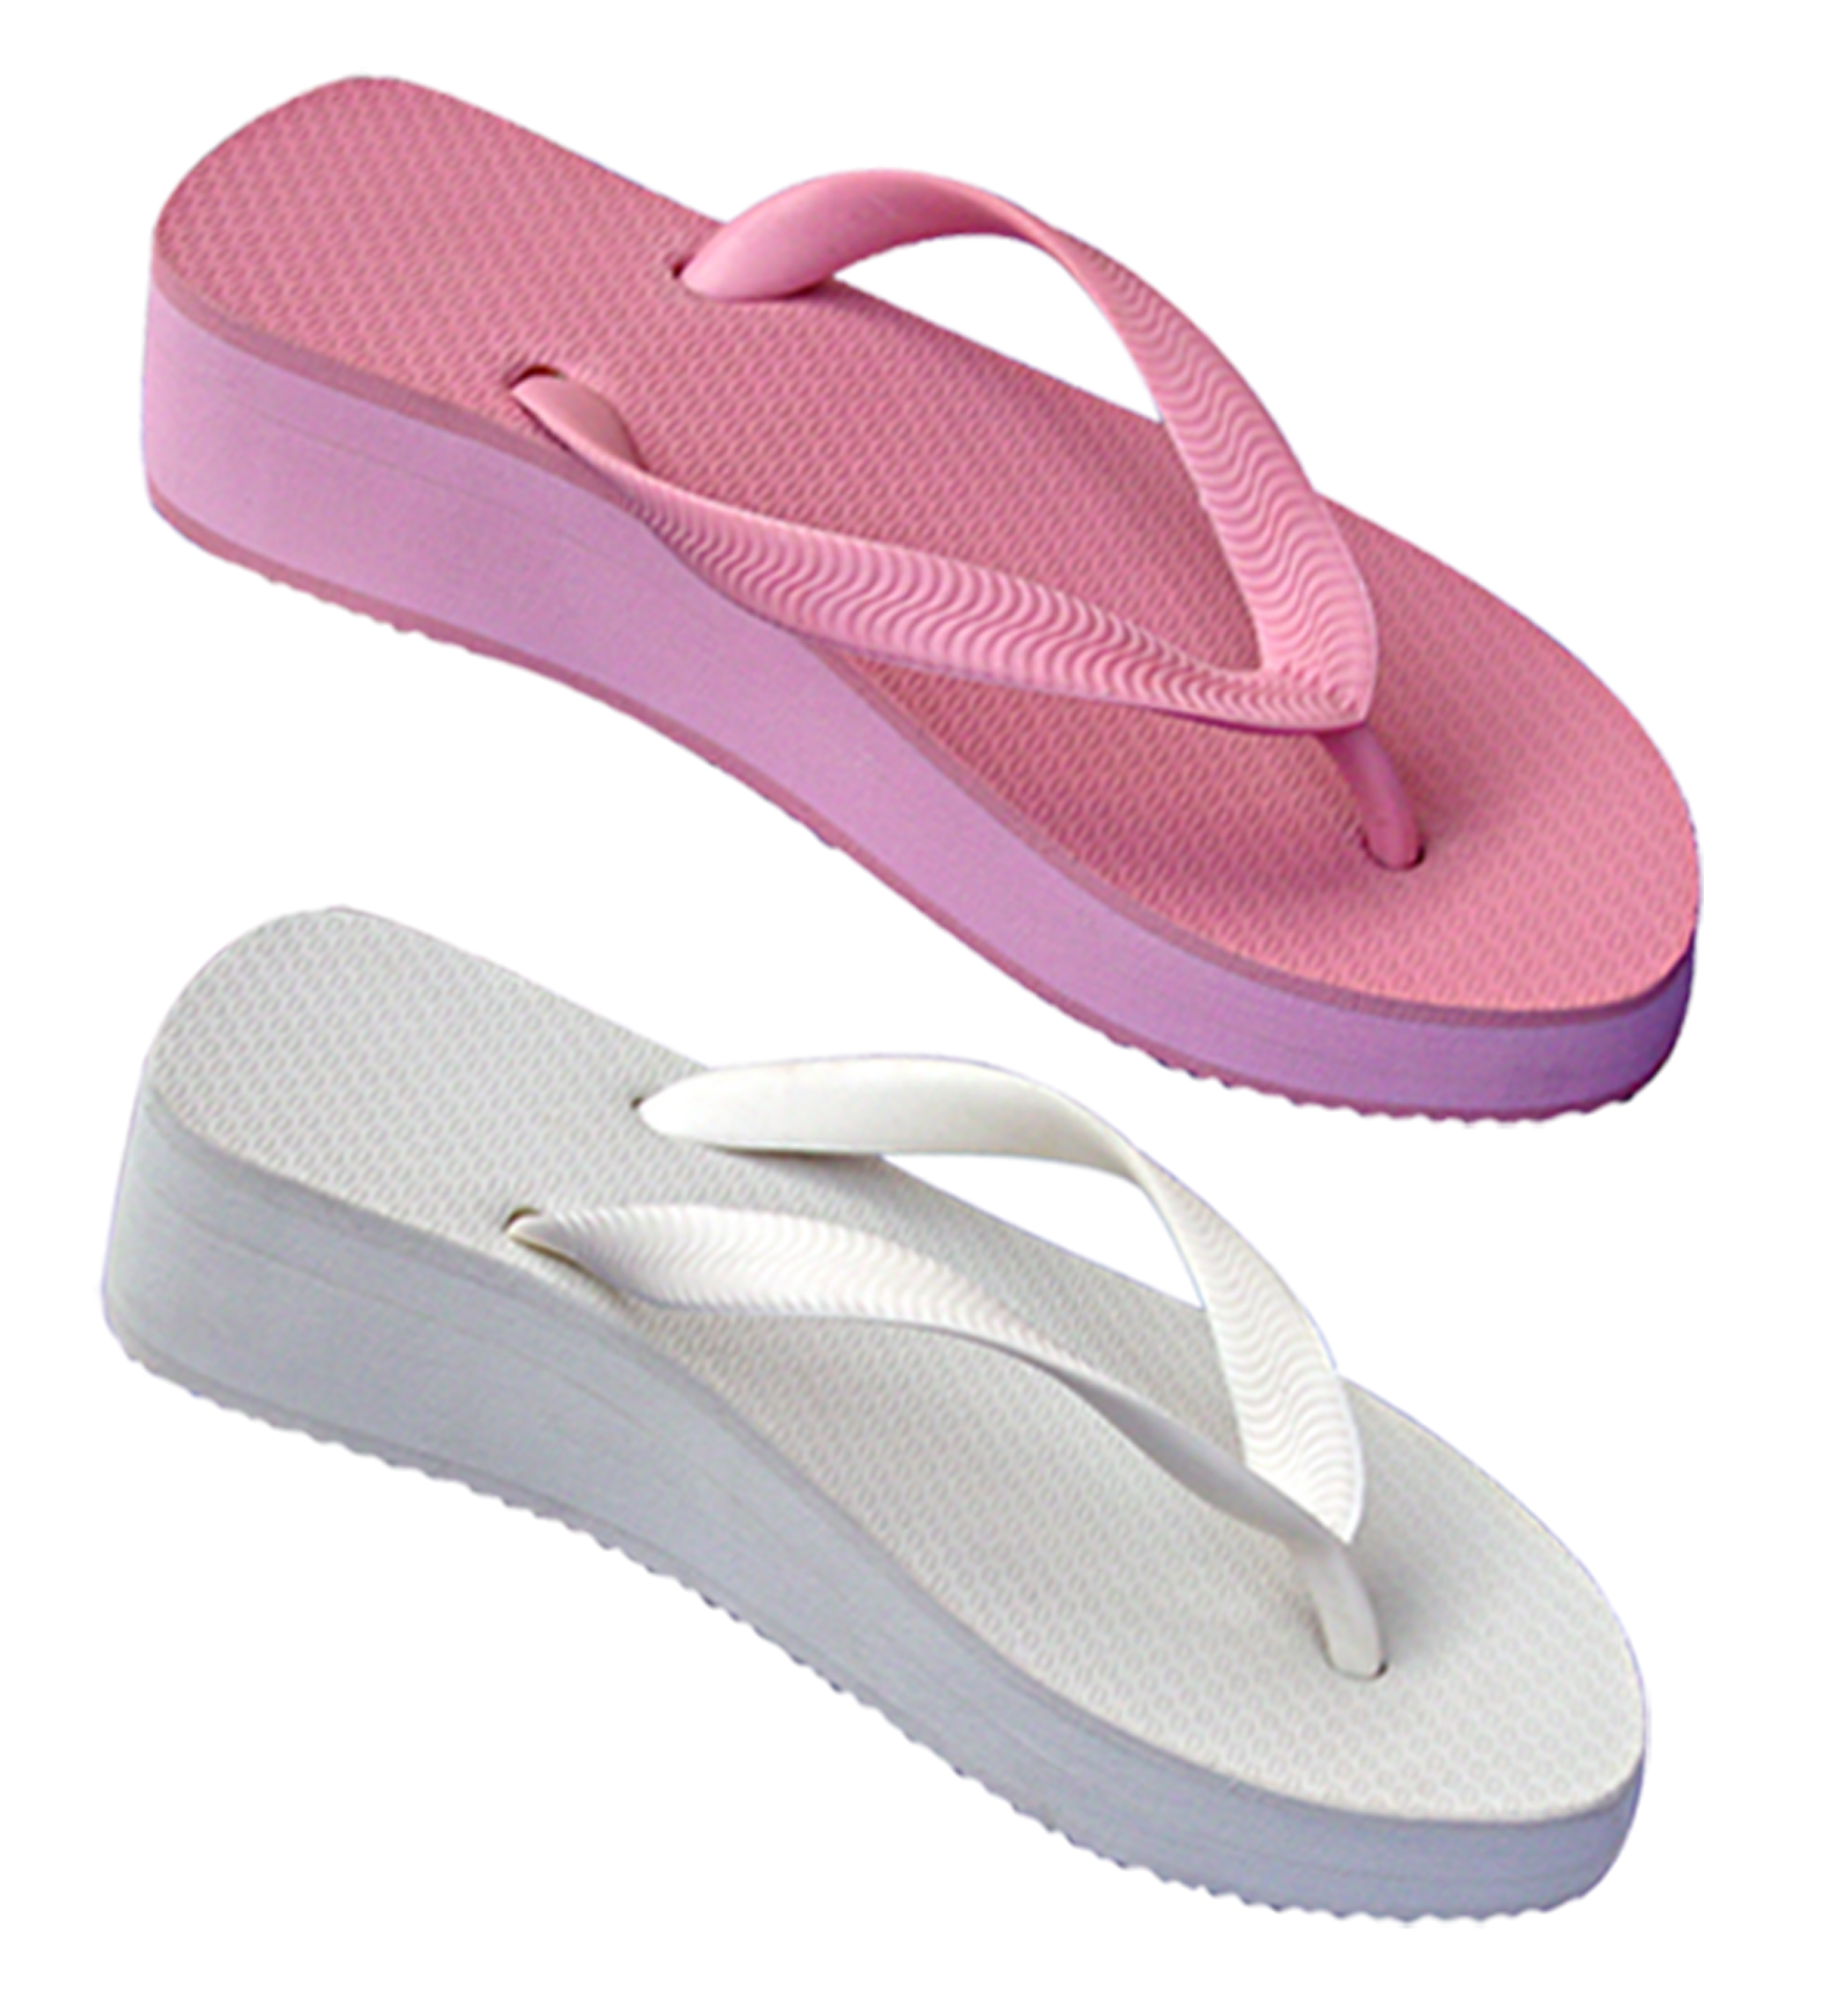 Bulk flip flop for wedding reception guests. Tons of colors, assorted sizes, super comfortable, cute design, affordable.